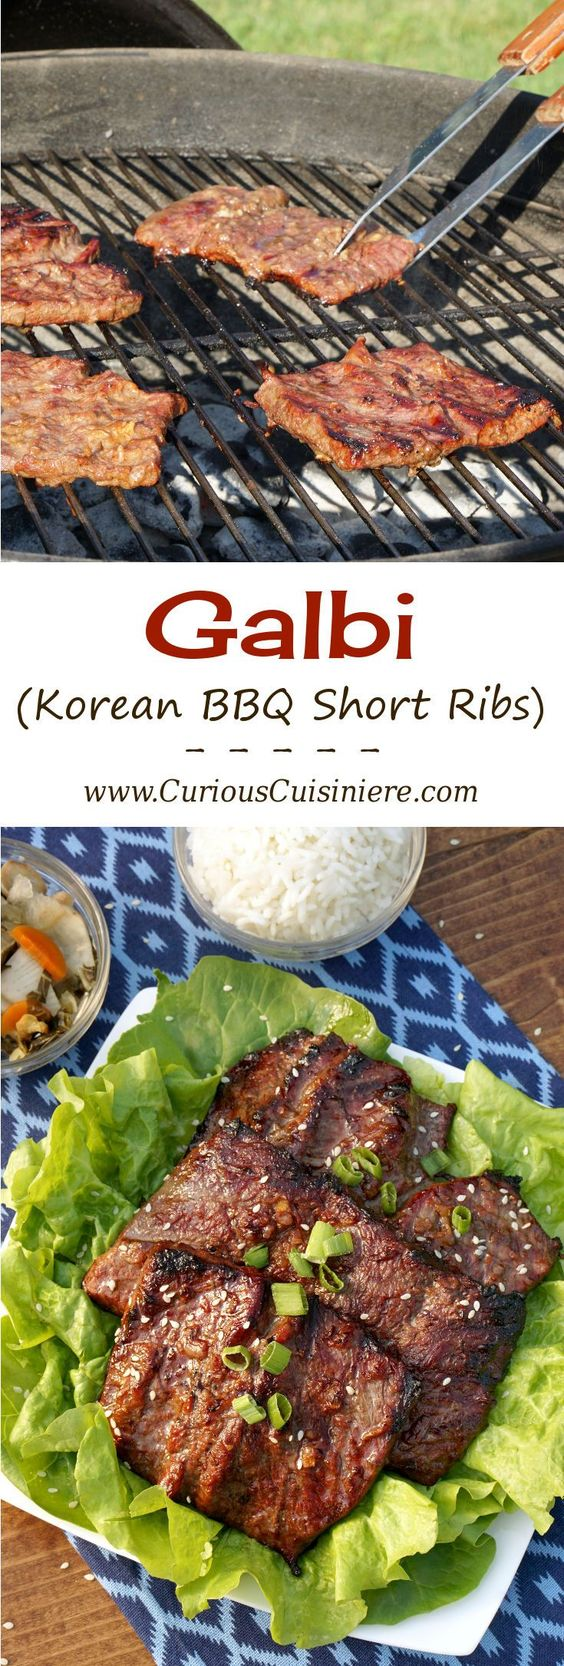 ribs sweet bbq short ribs short ribs korean bbq grilled short ribs ...